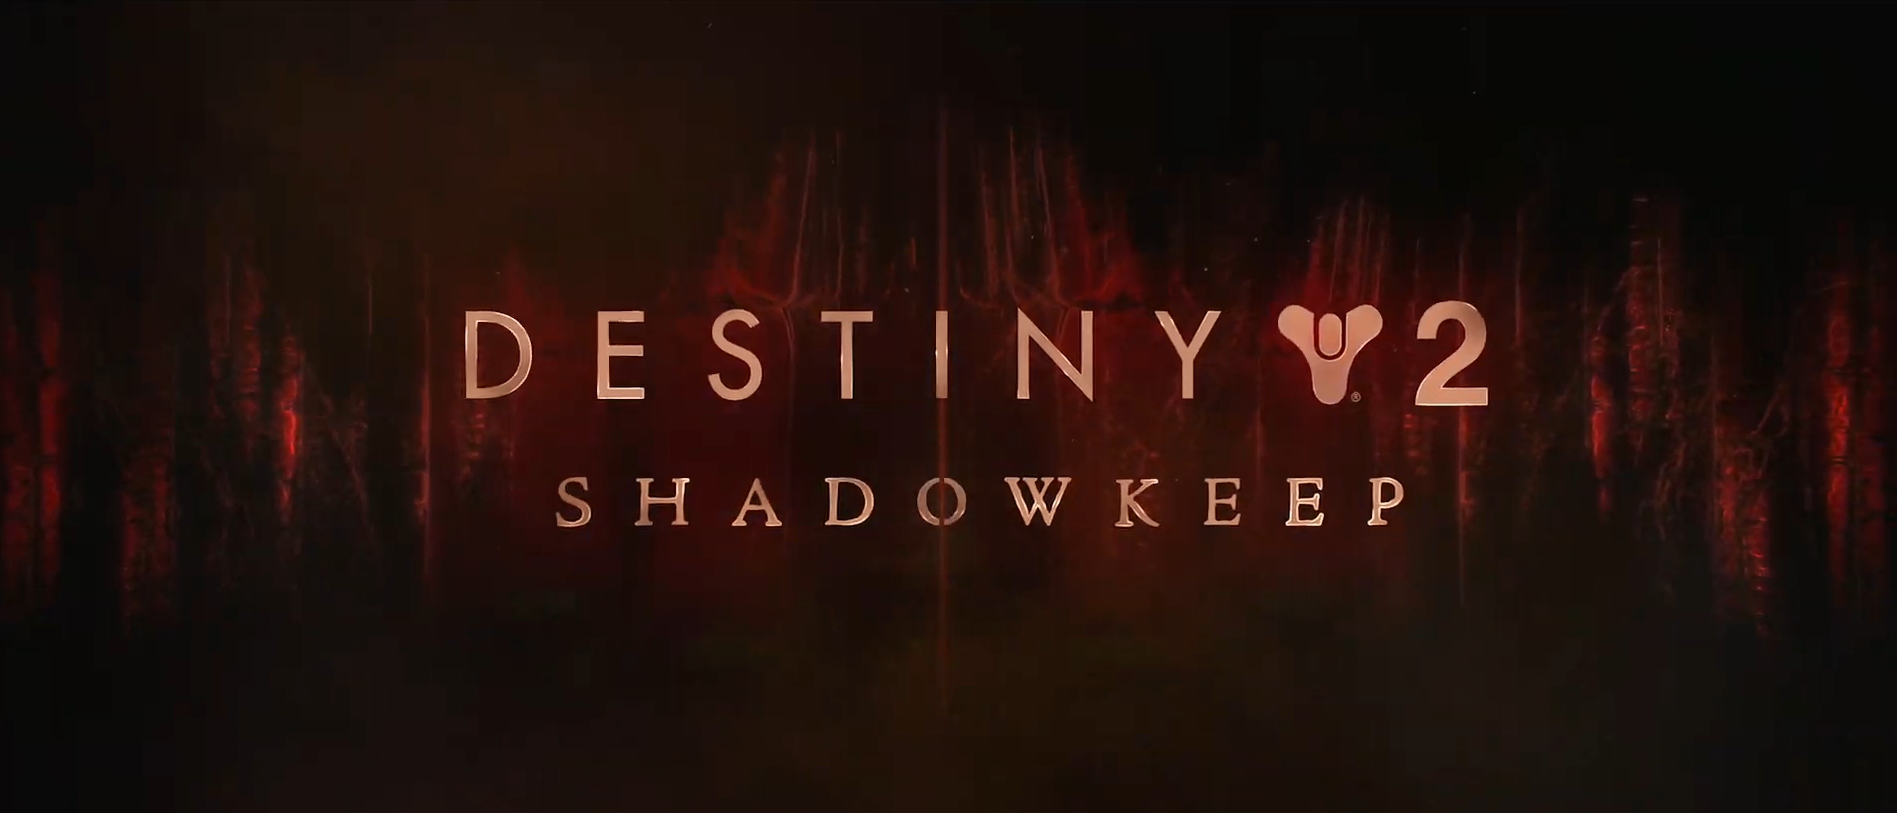 Destiny 2 Shadowkeep Leaks Coming To Google Stadia